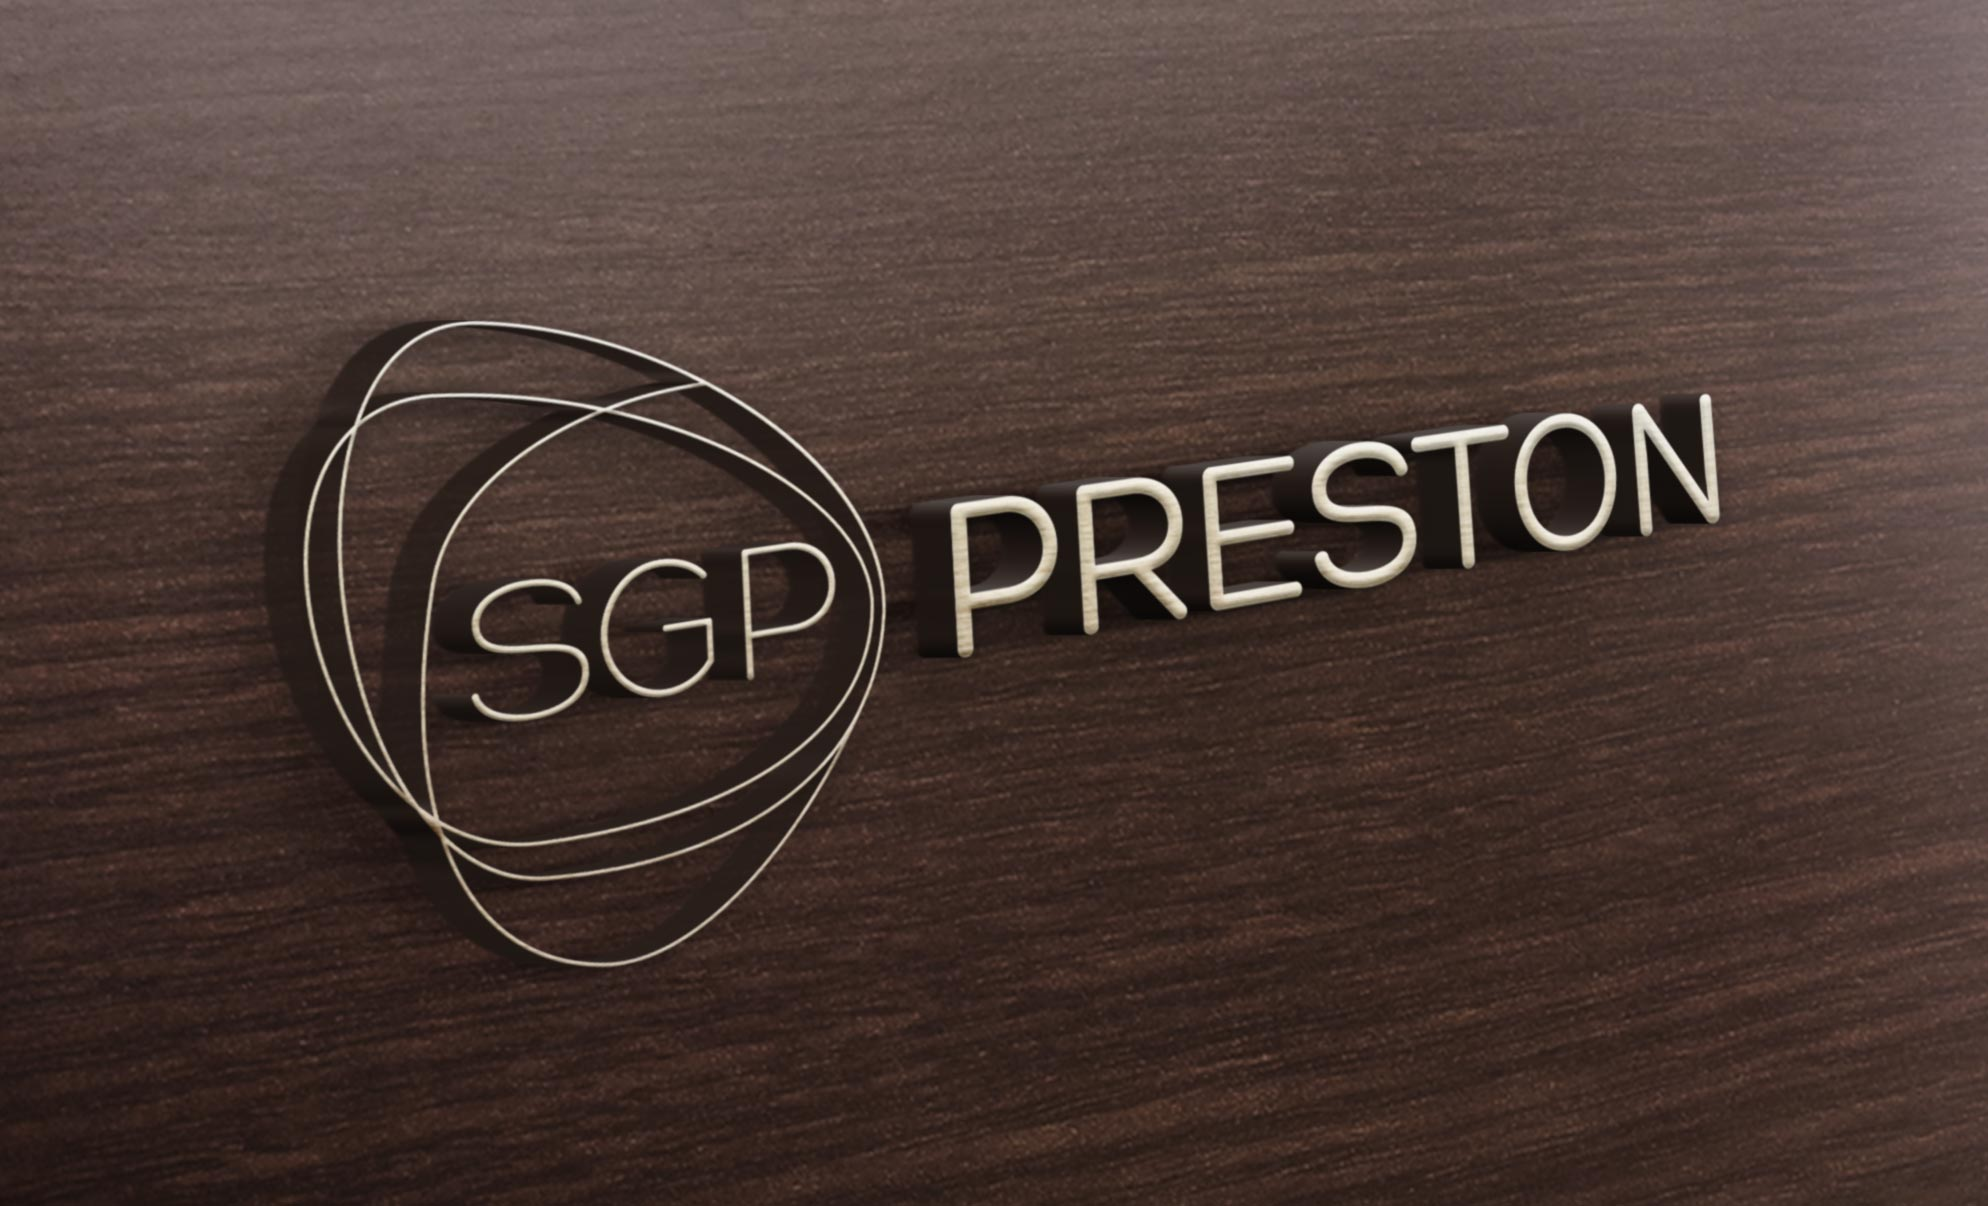 SCP Preston Logotype Logo